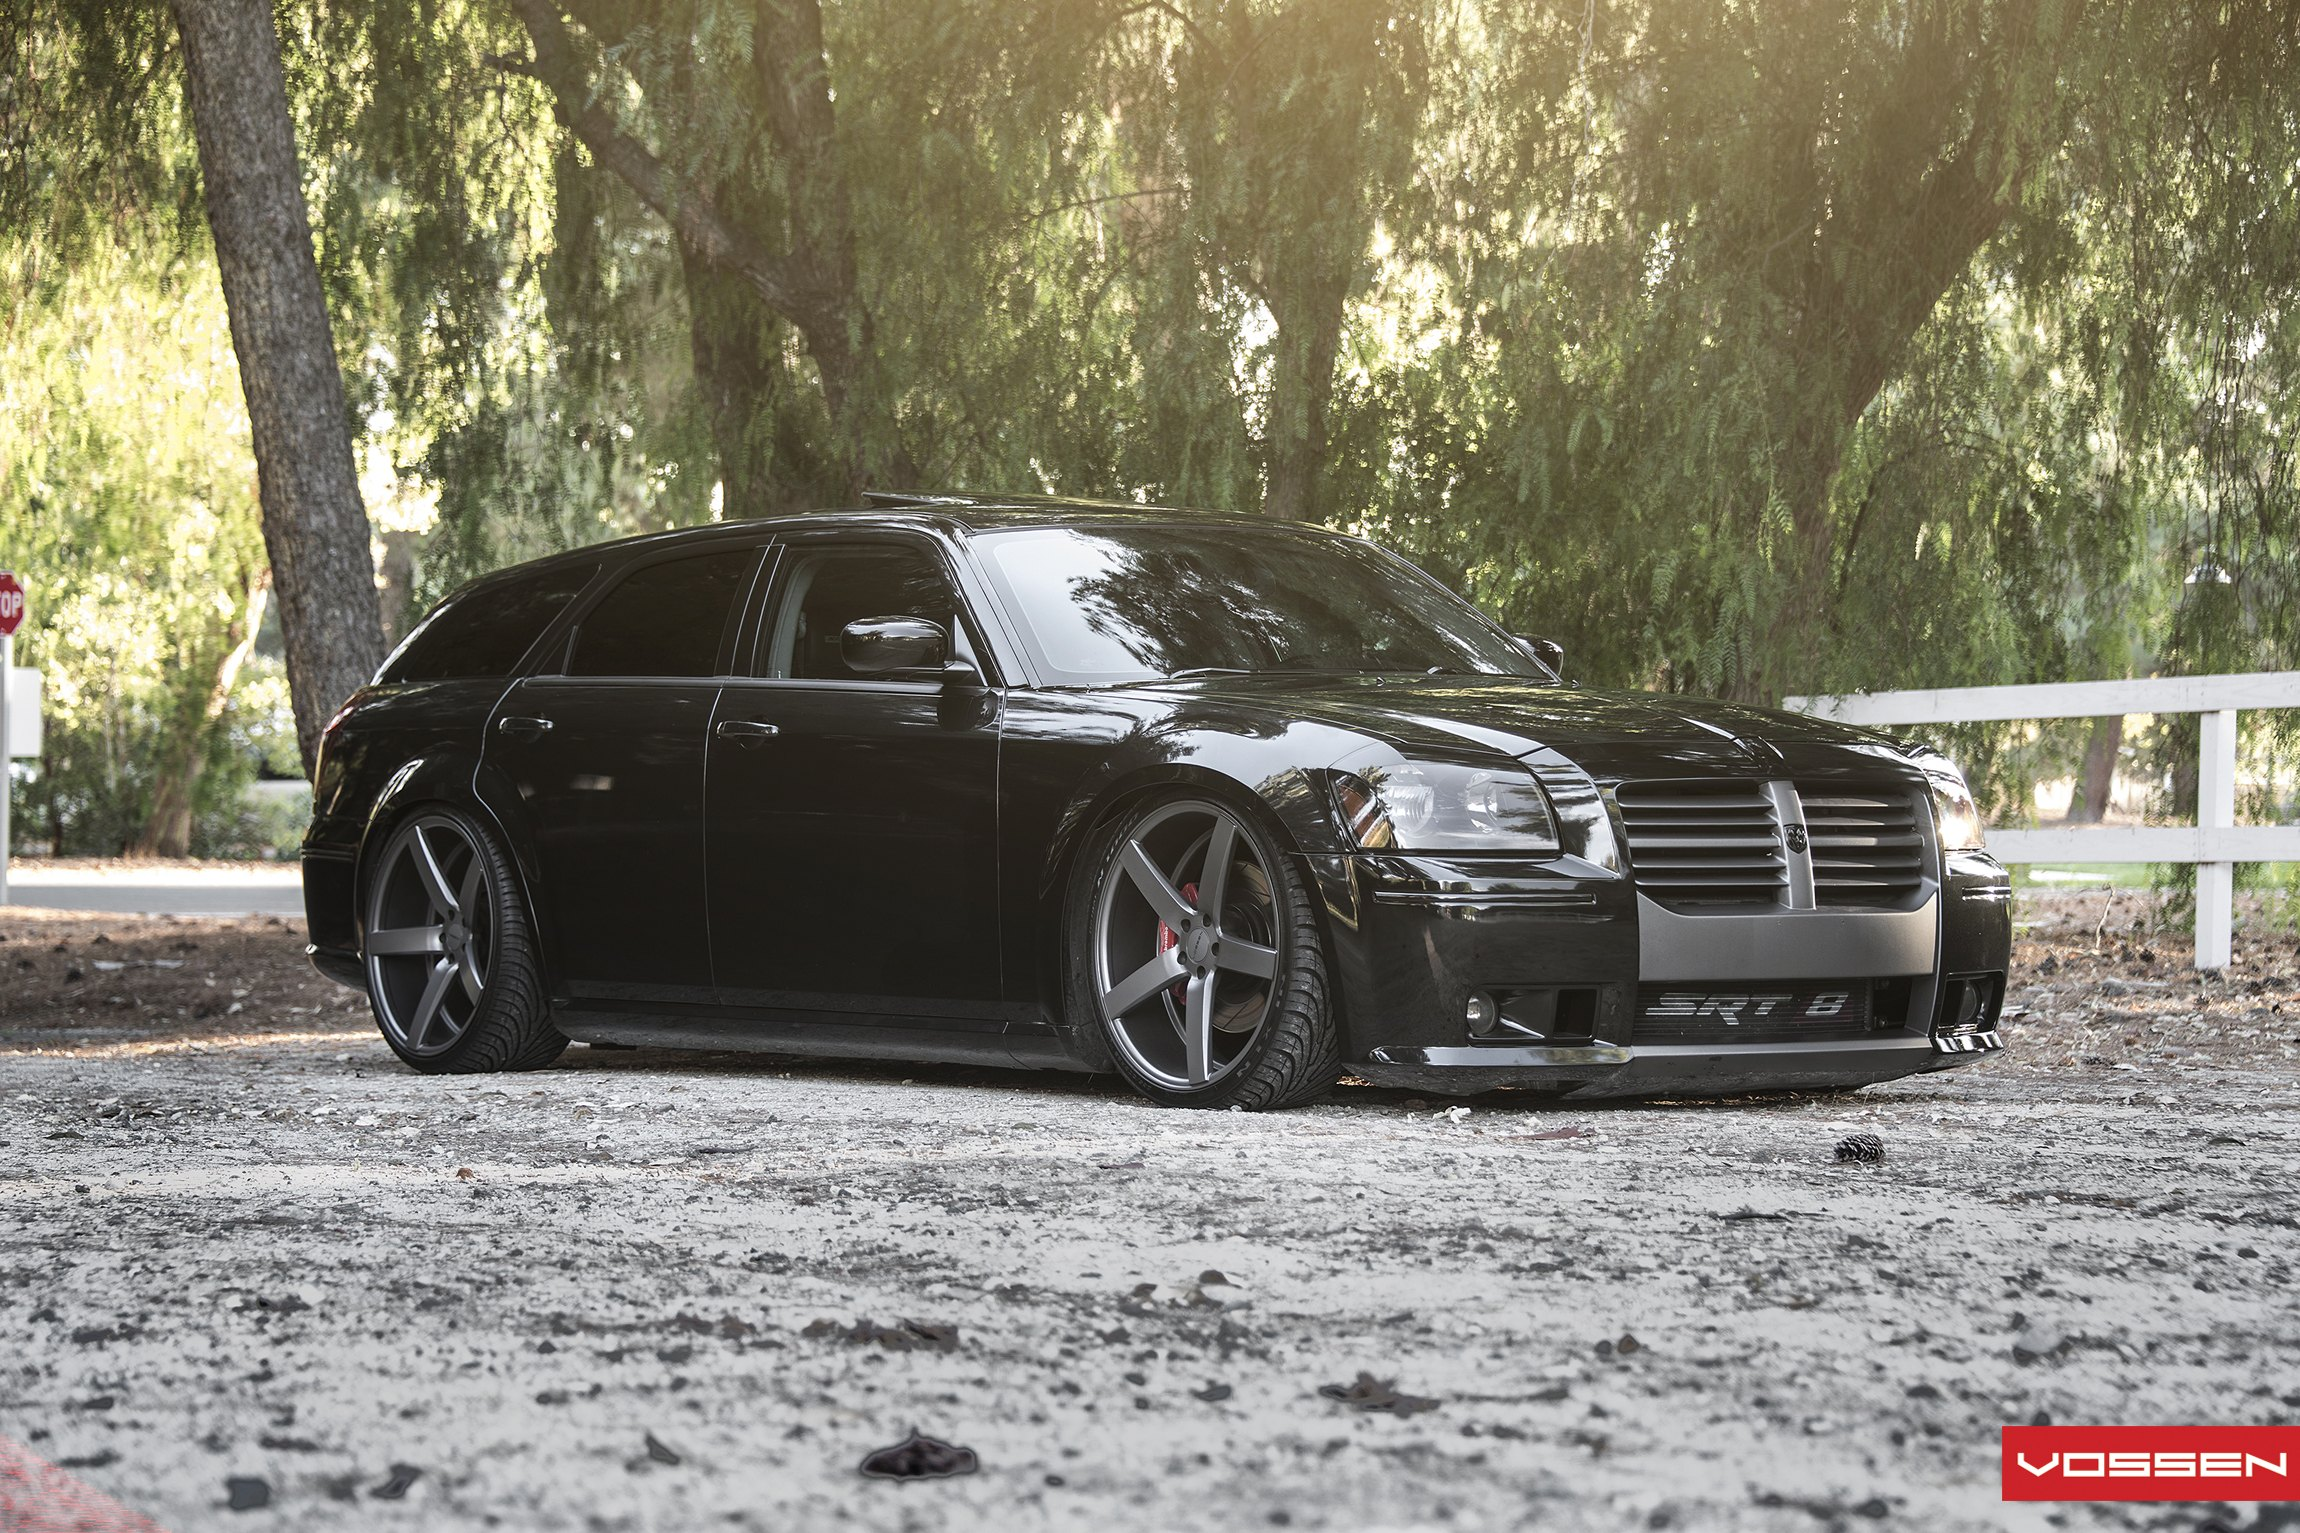 Black Dodge Magnum Srt8 Taken To Another Level With Custom